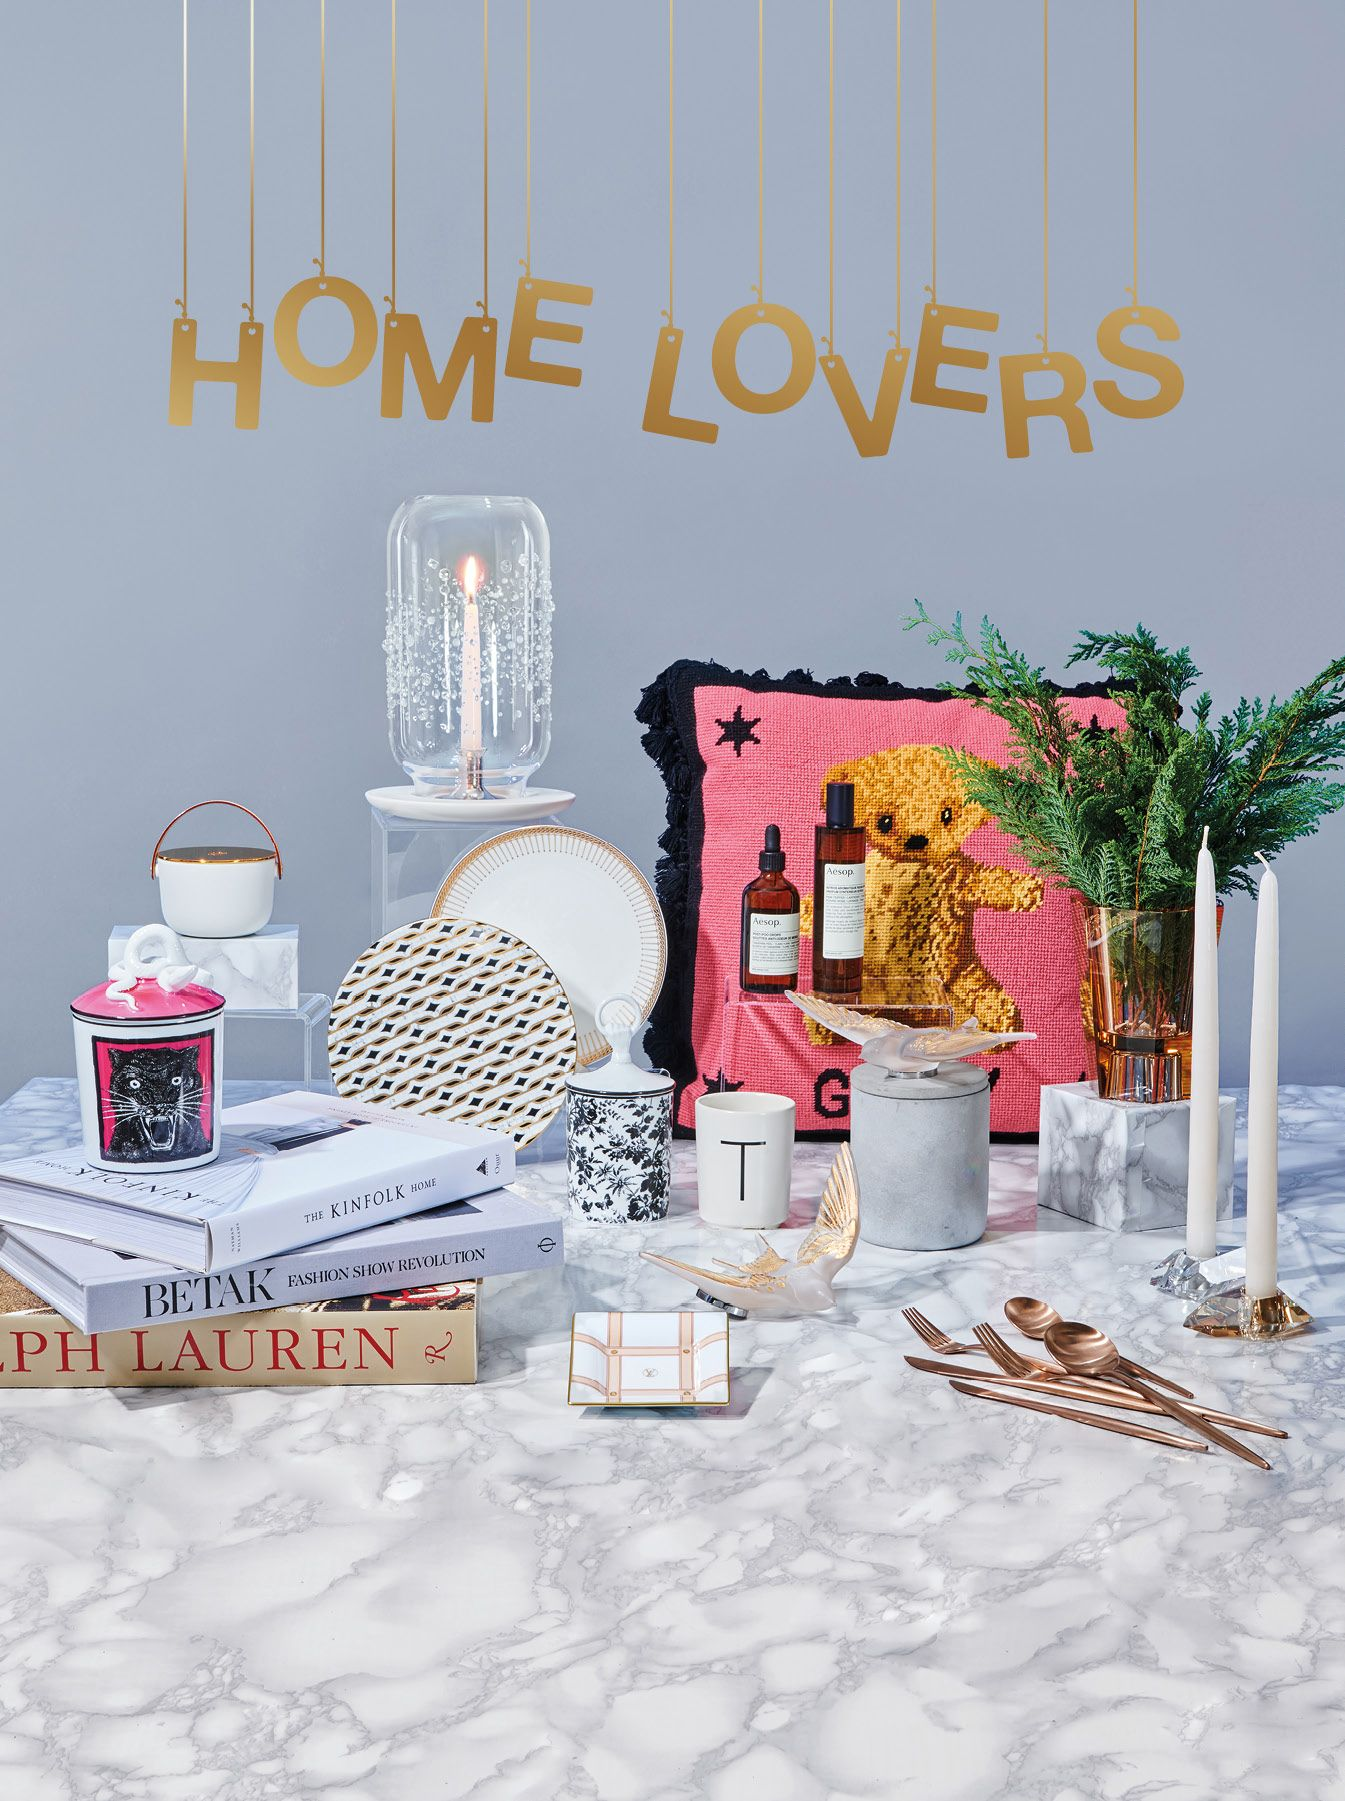 20 Gorgeous Home Decor Christmas Gift Ideas Hong Kong Tatler